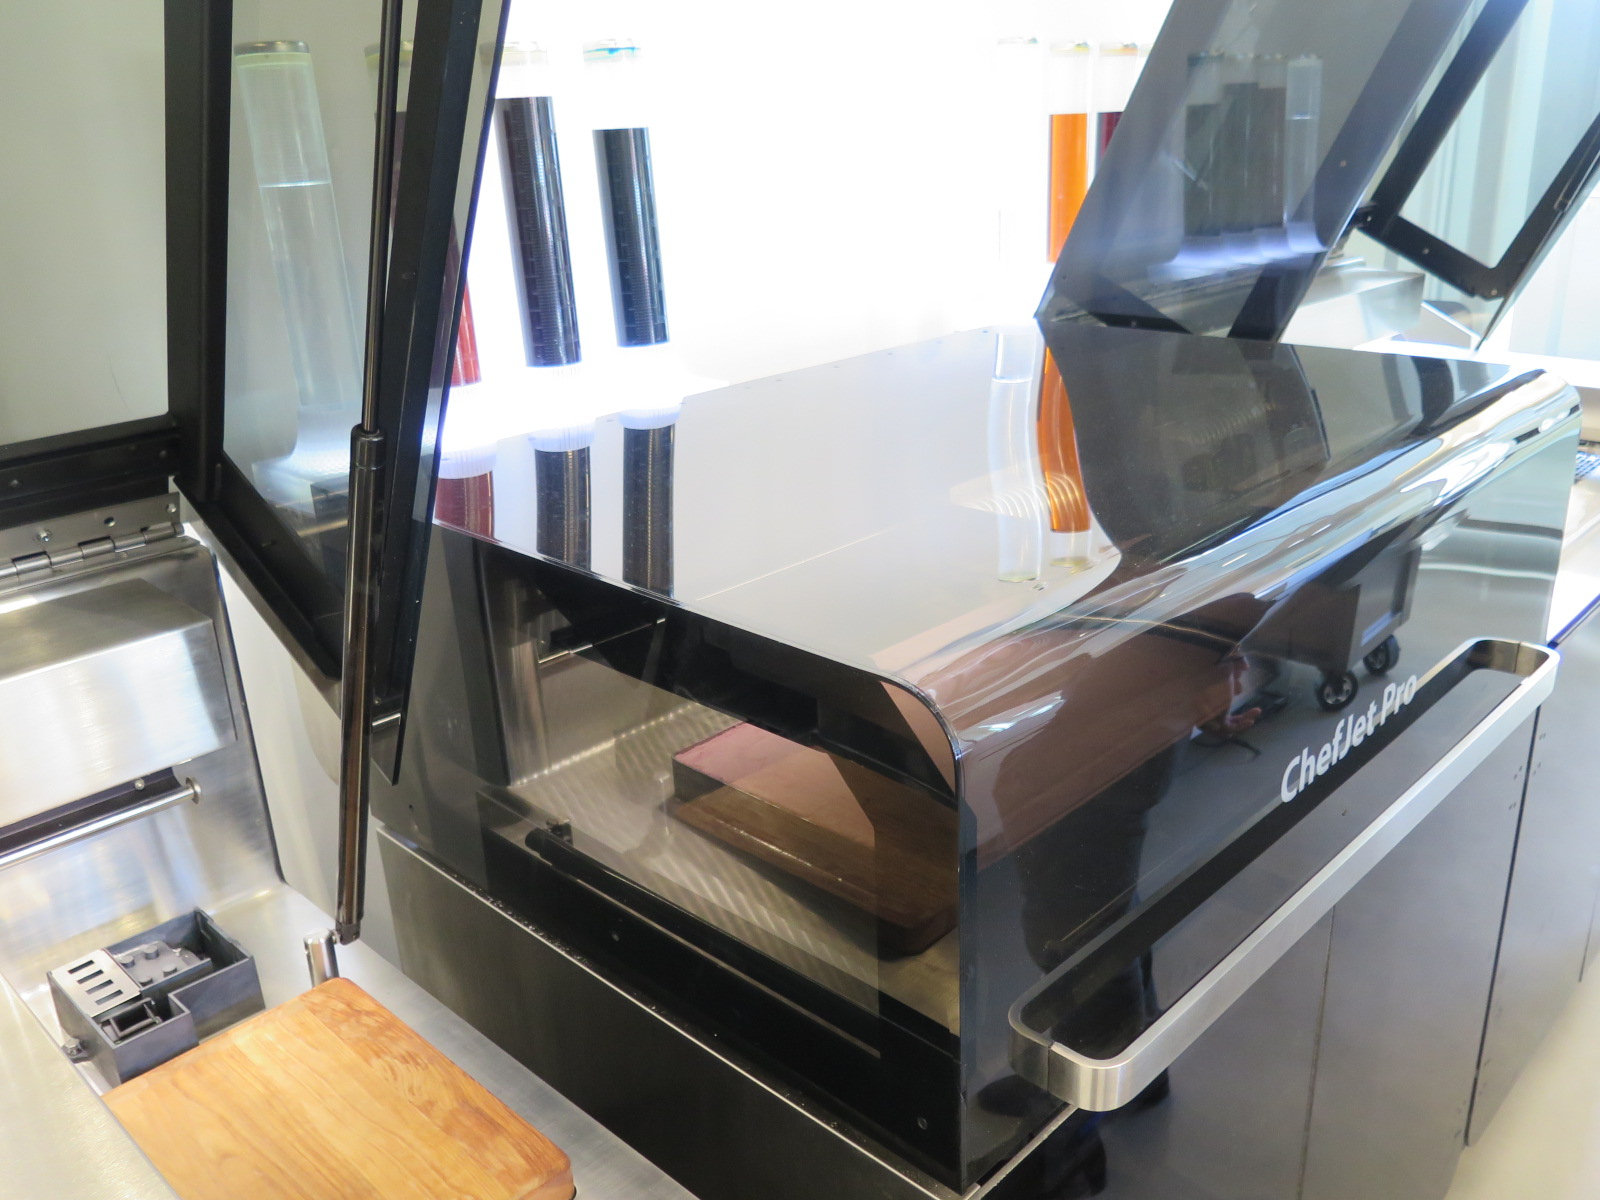 3D Food Printing Roadtrip: Inside 3DS Culinary Lab